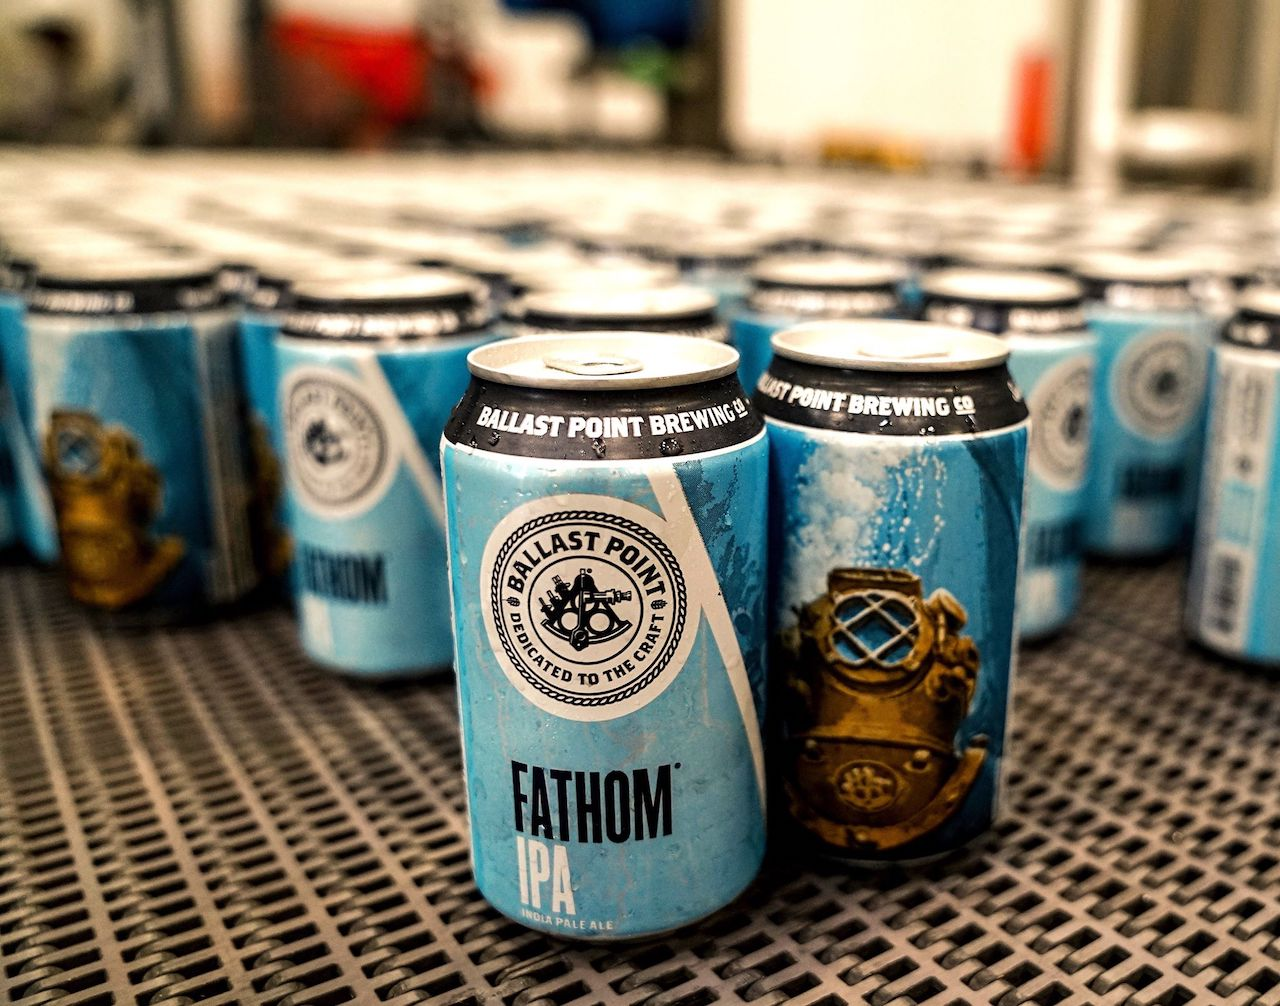 adad7ed6a Why Ballast Point Failed to Dominate the World • thefullpint.com